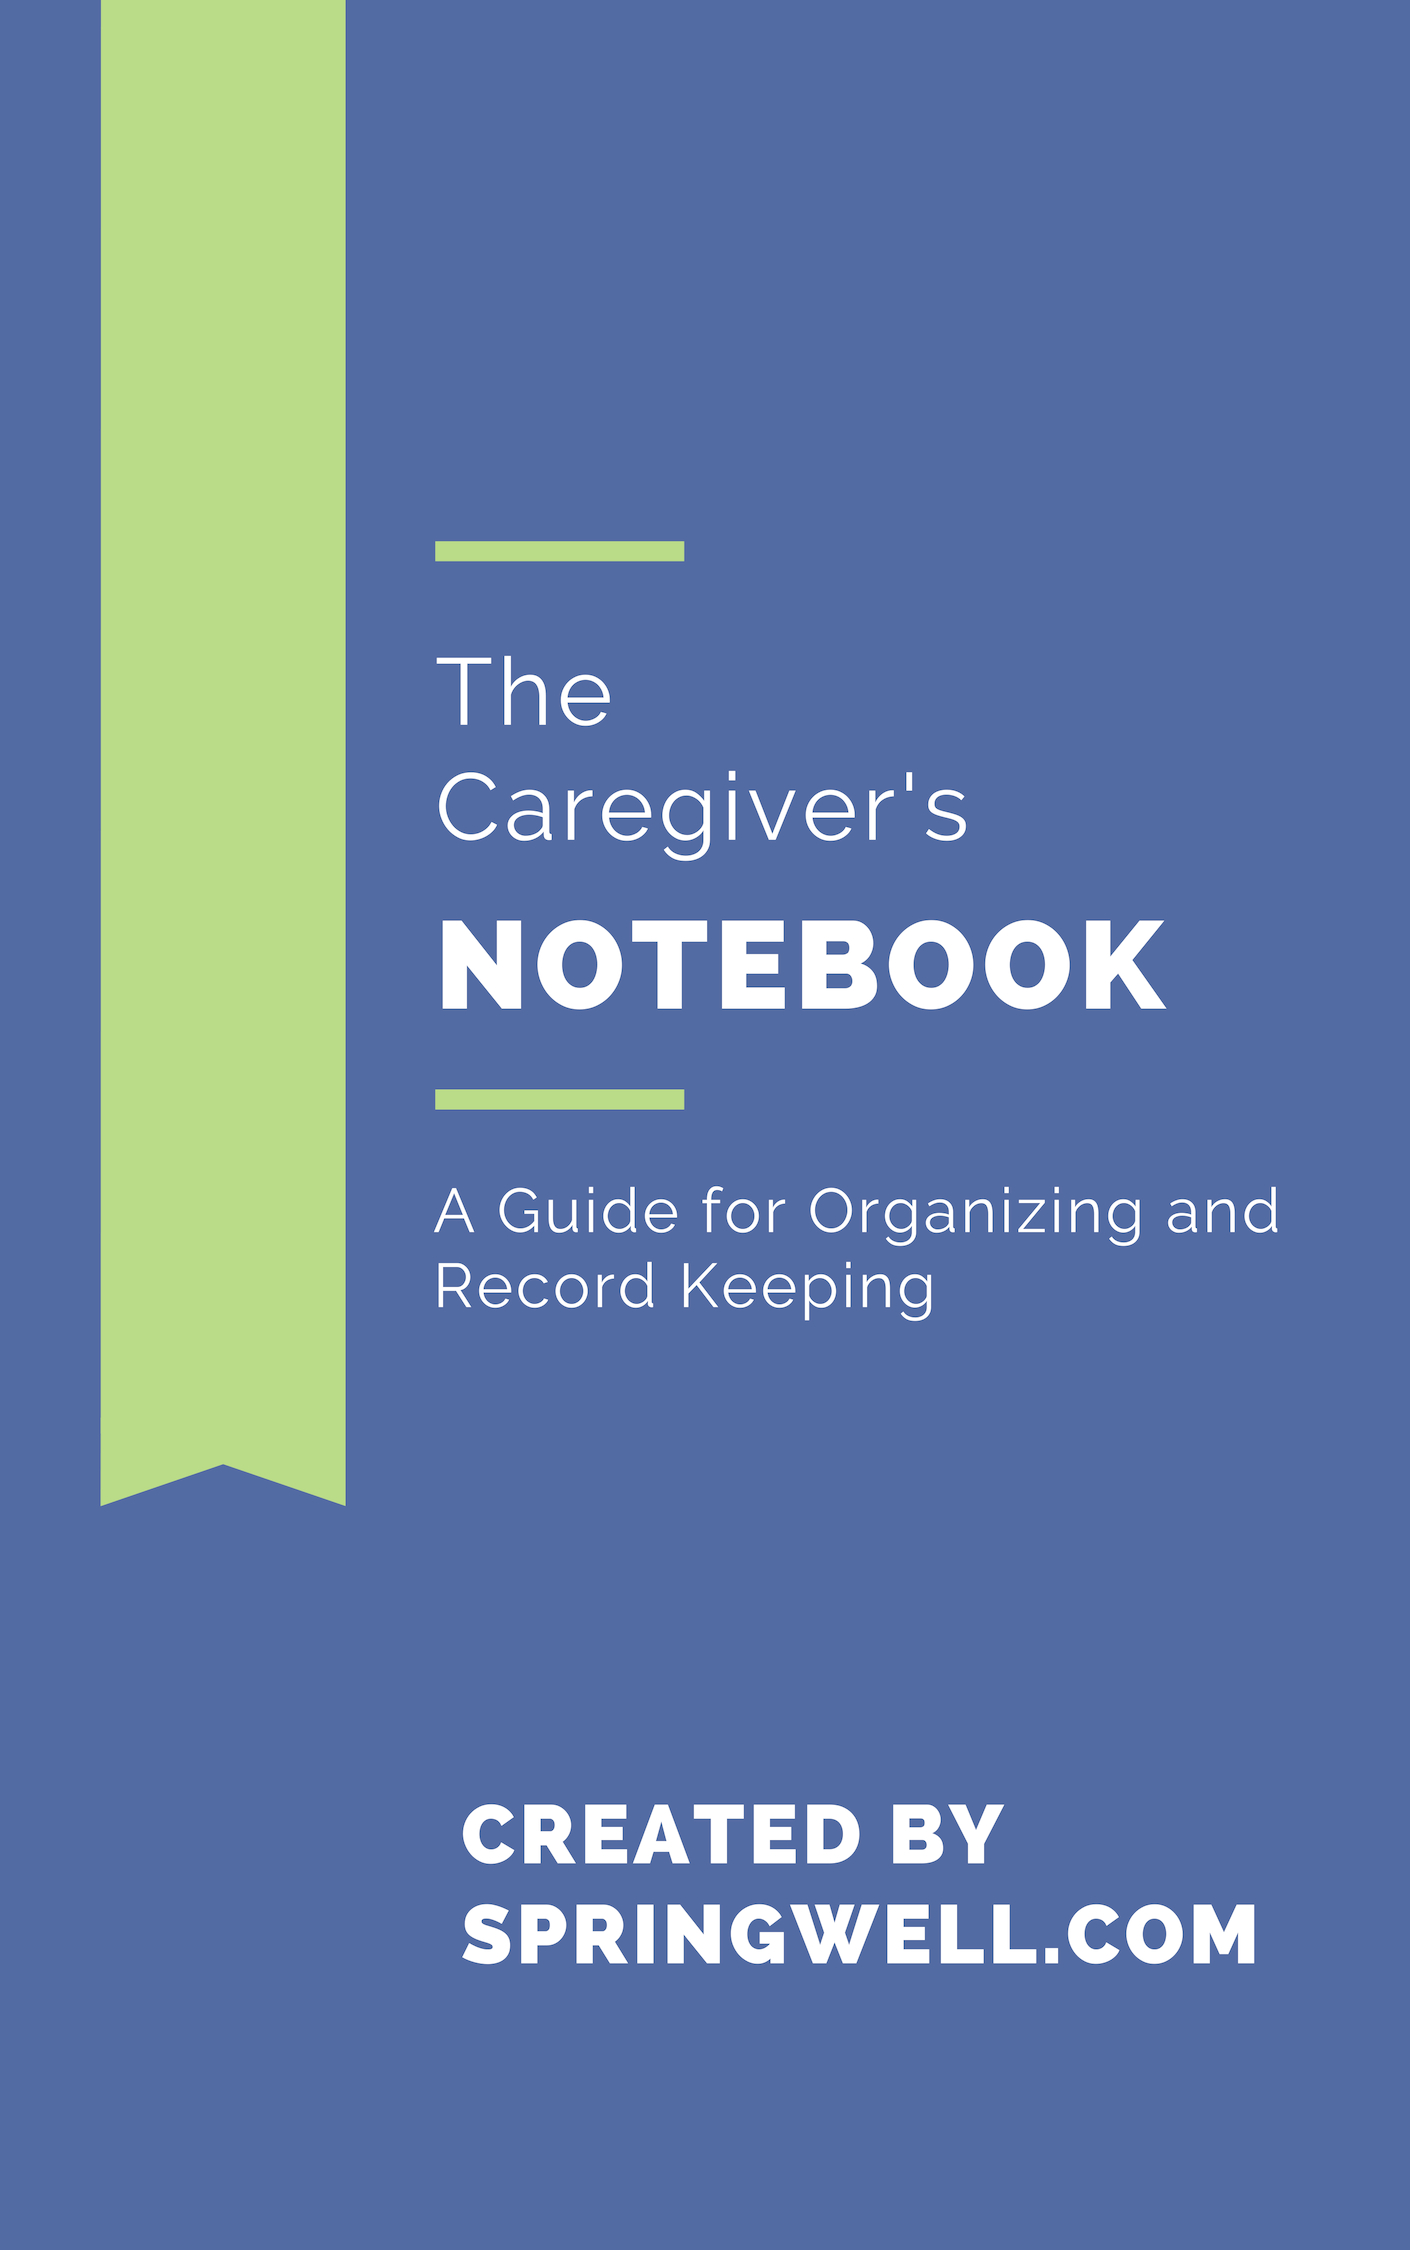 Click here for a free Caregiver Notebook downloadable PDF template to keep all your details, schedules, and documents organized.